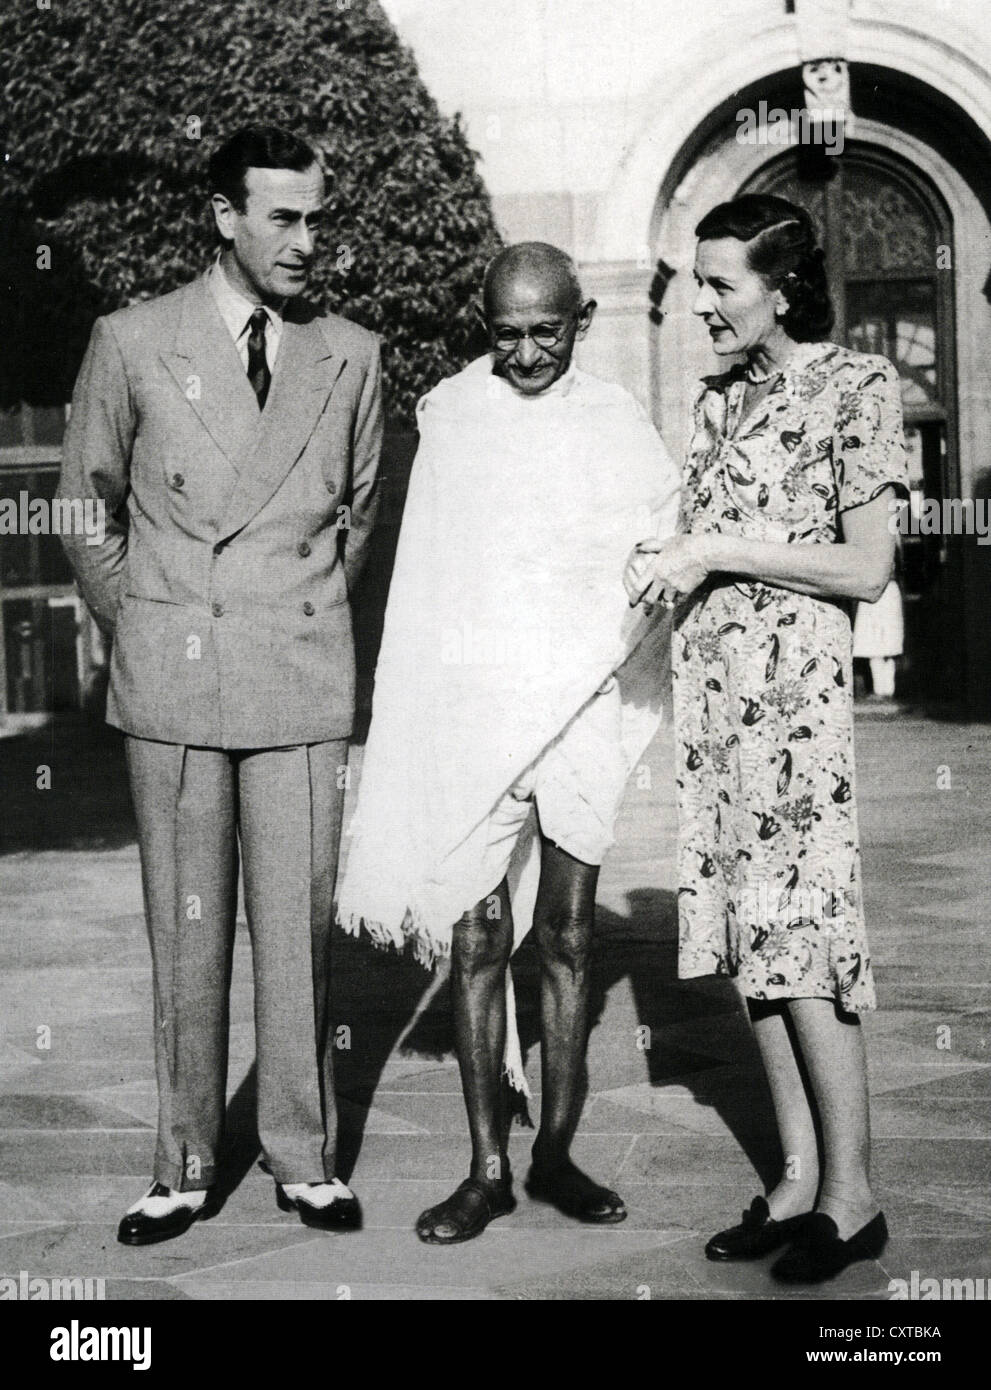 LORD LOUIS MOUNTBATTEN with wife Edwina and Mahatma Gandhi in India in 1947 - Stock Image